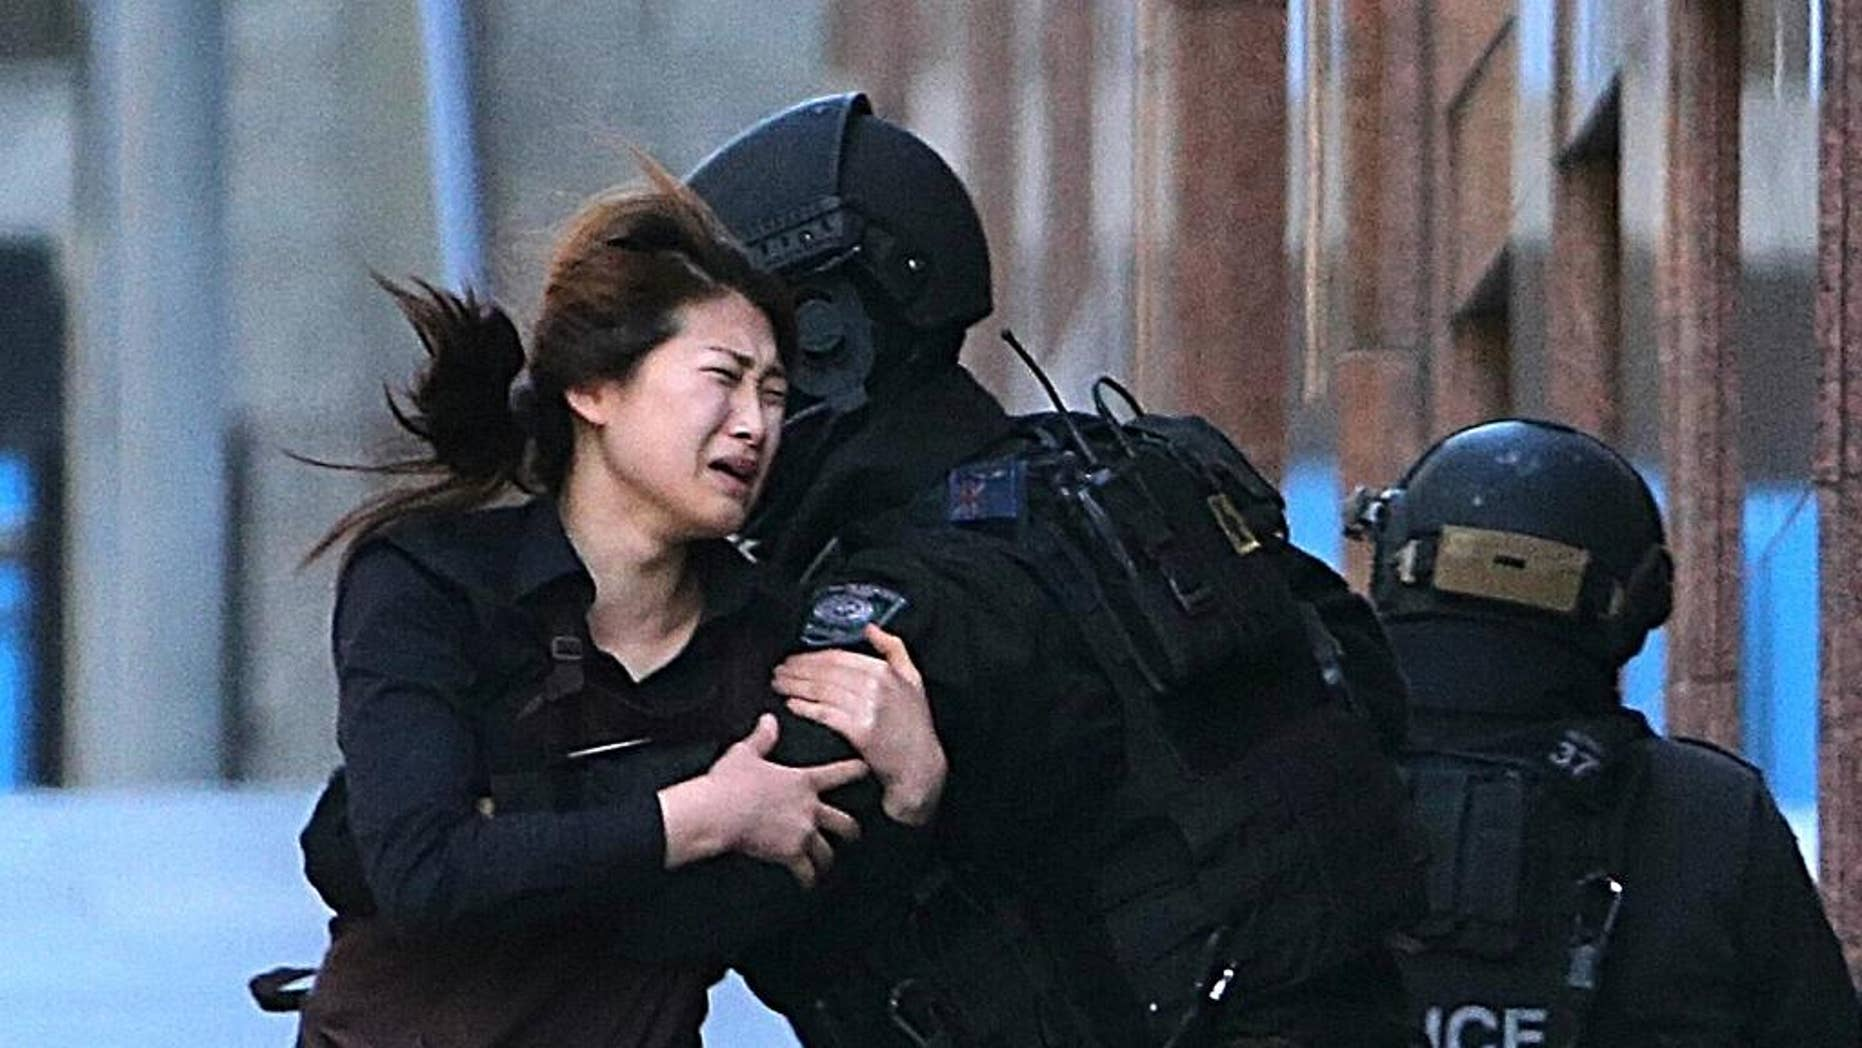 In this Dec. 15, 2014 file photo, a hostage runs to armed tactical response police officers for safety after she escaped from a cafe under siege at Martin Place in the central business district of Sydney, Australia.  For a country of just 24 million that is thousands of miles from Syria and Iraq, Australia has been unusually fertile ground for Islamic State recruiters.